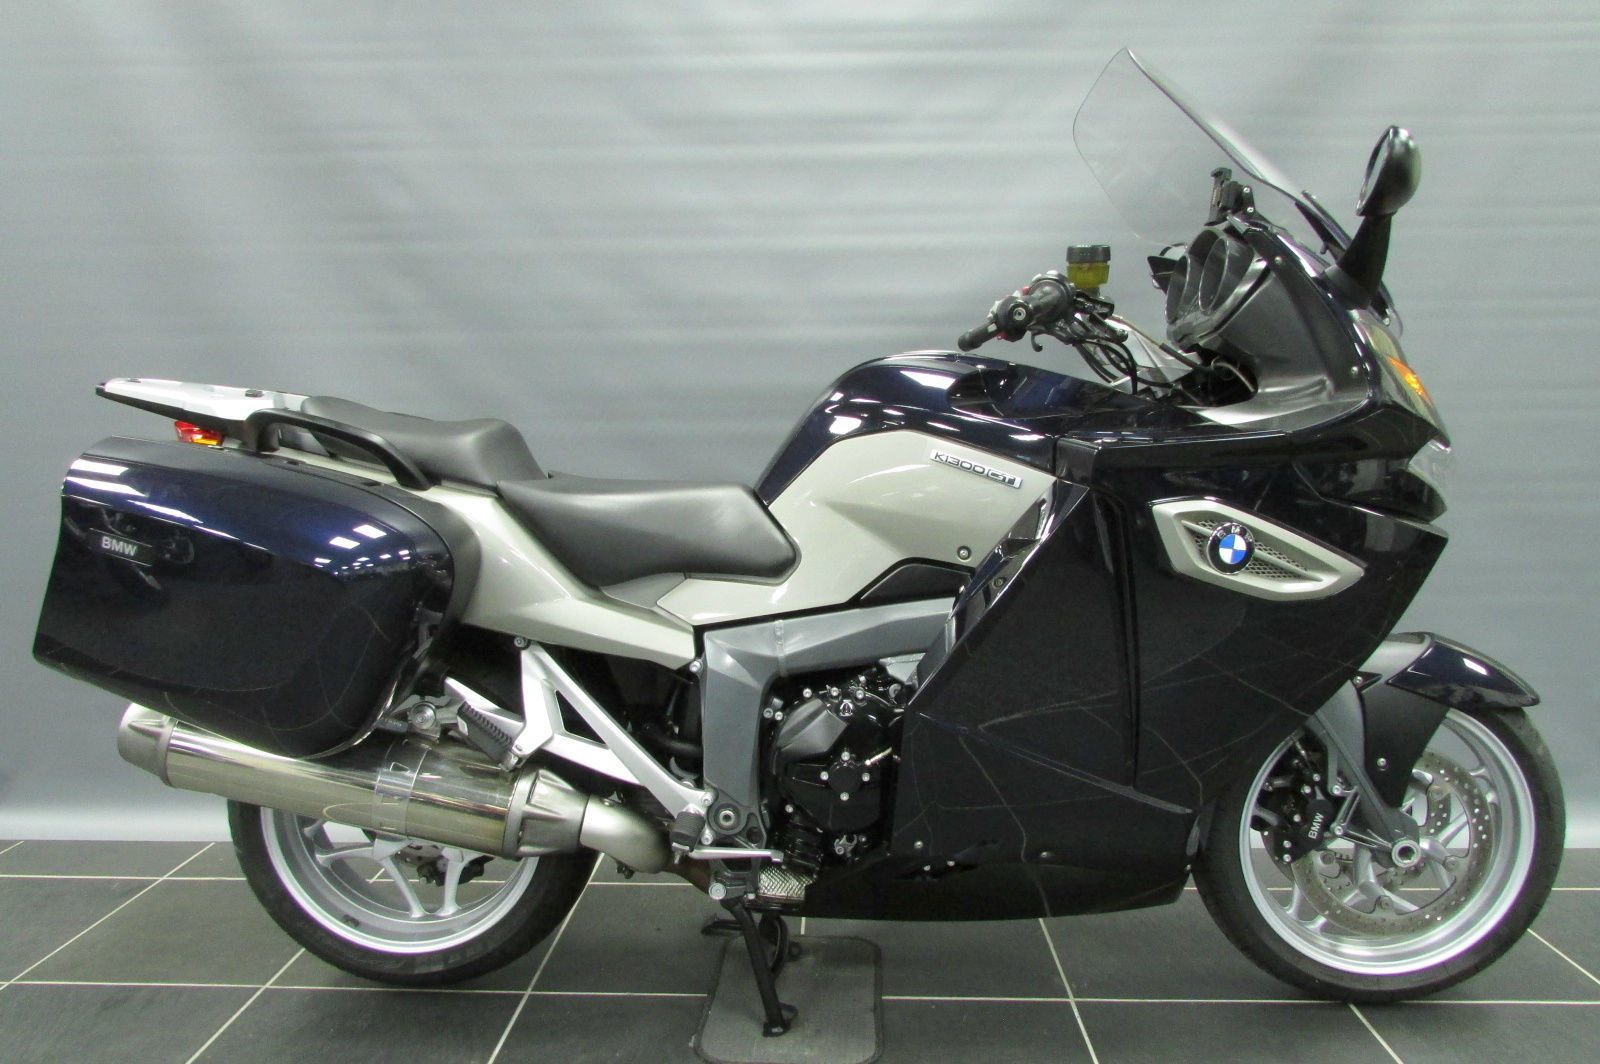 Considering changing to a K1300 Gt-k1.jpg